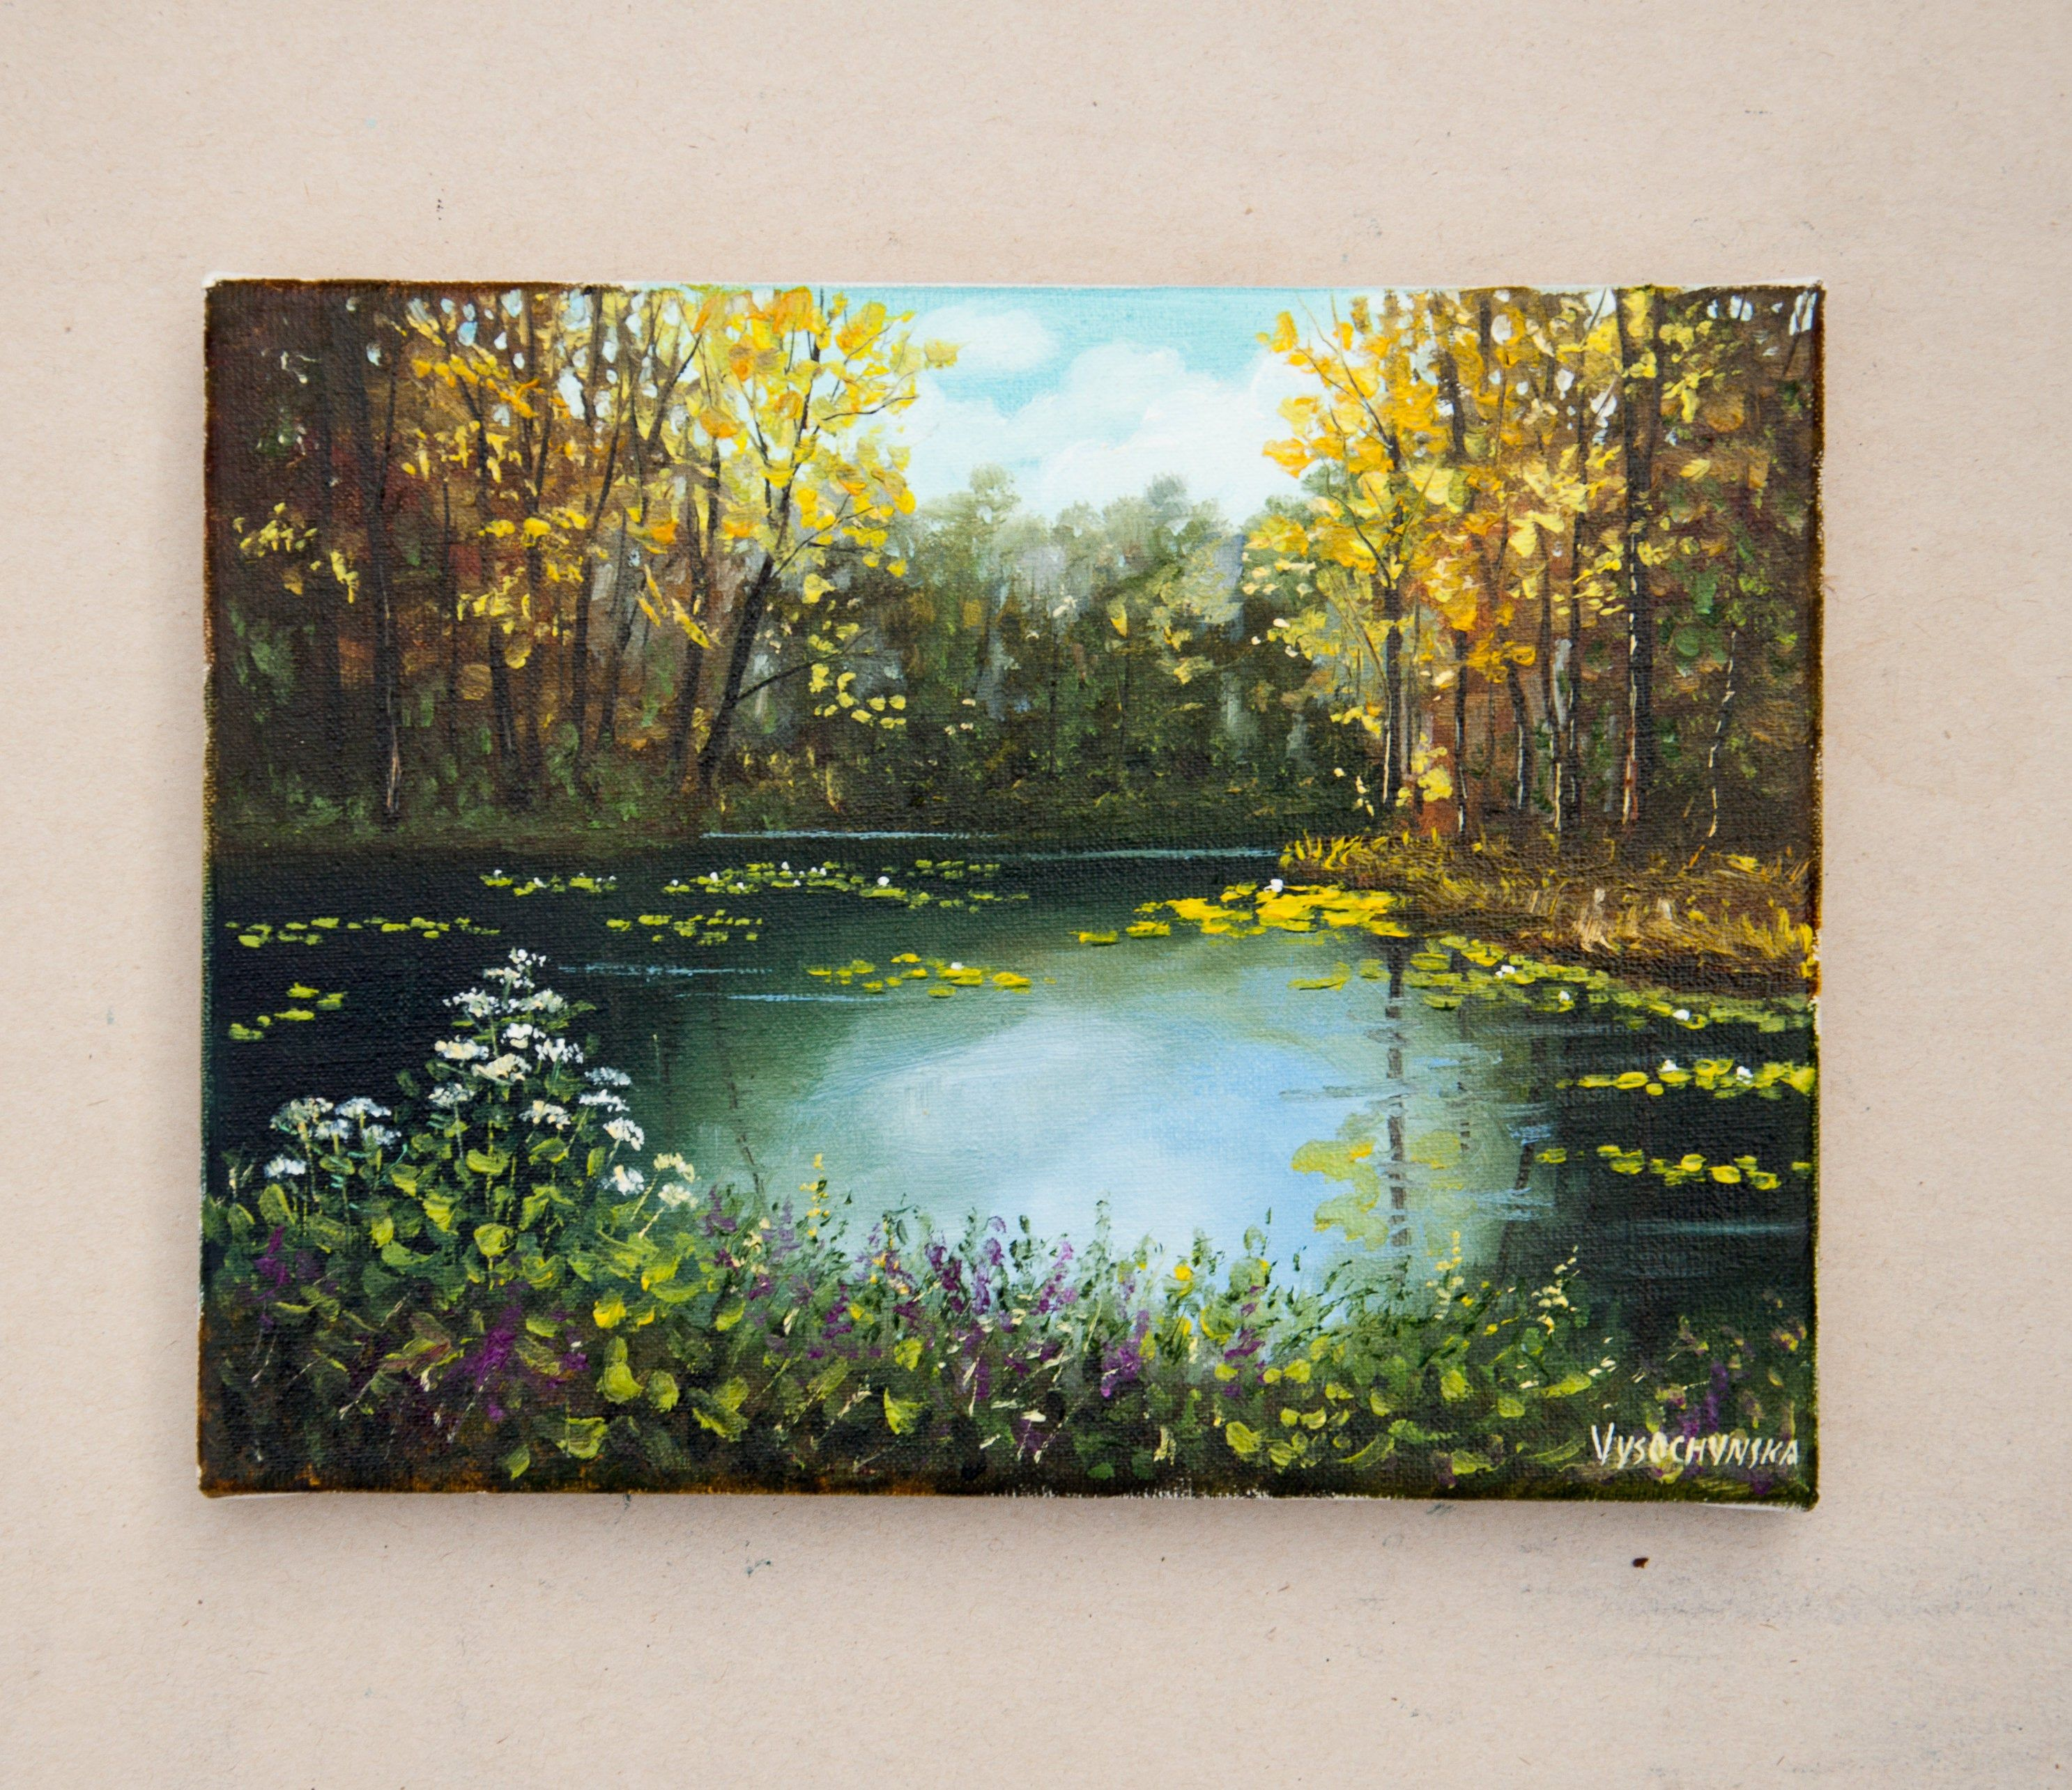 Forest Landscape Original Oil Painting Woodland Scene Small Etsy In 2020 Canvas Painting Landscape Oil Painting Nature Nature Canvas Painting